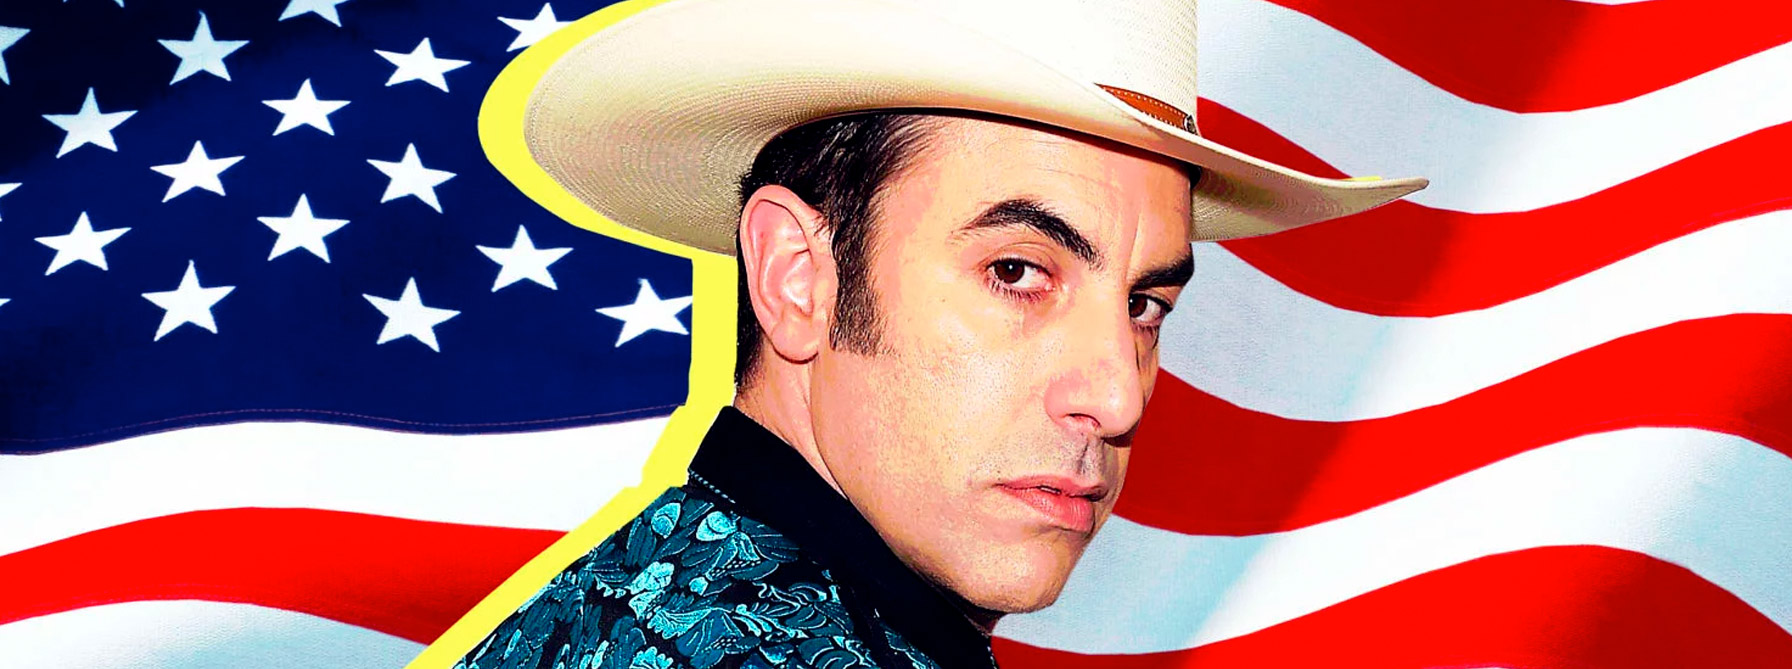 who_is_america_sacha_baron_cohen_delivers_content_marketing_truths_banner (1) header